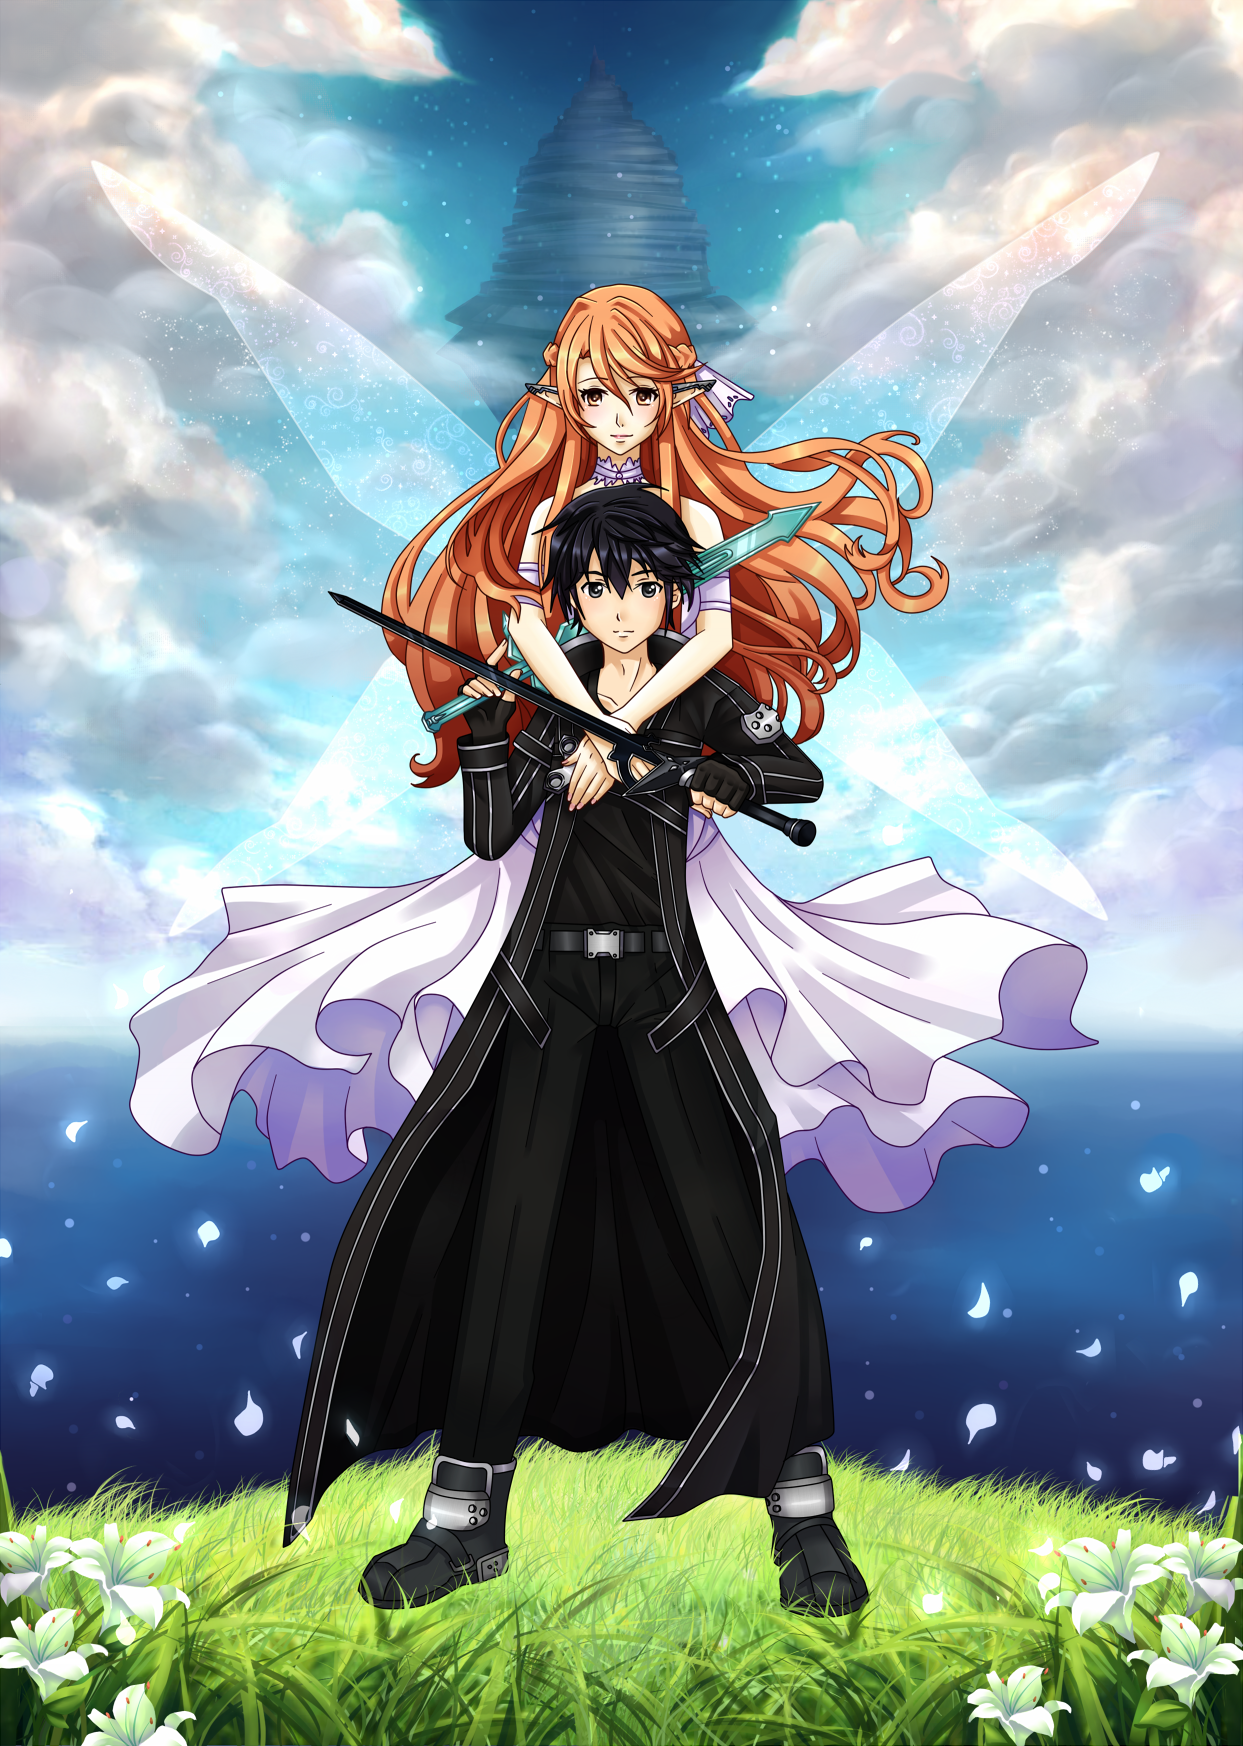 SAO Kirito and Asuna by on